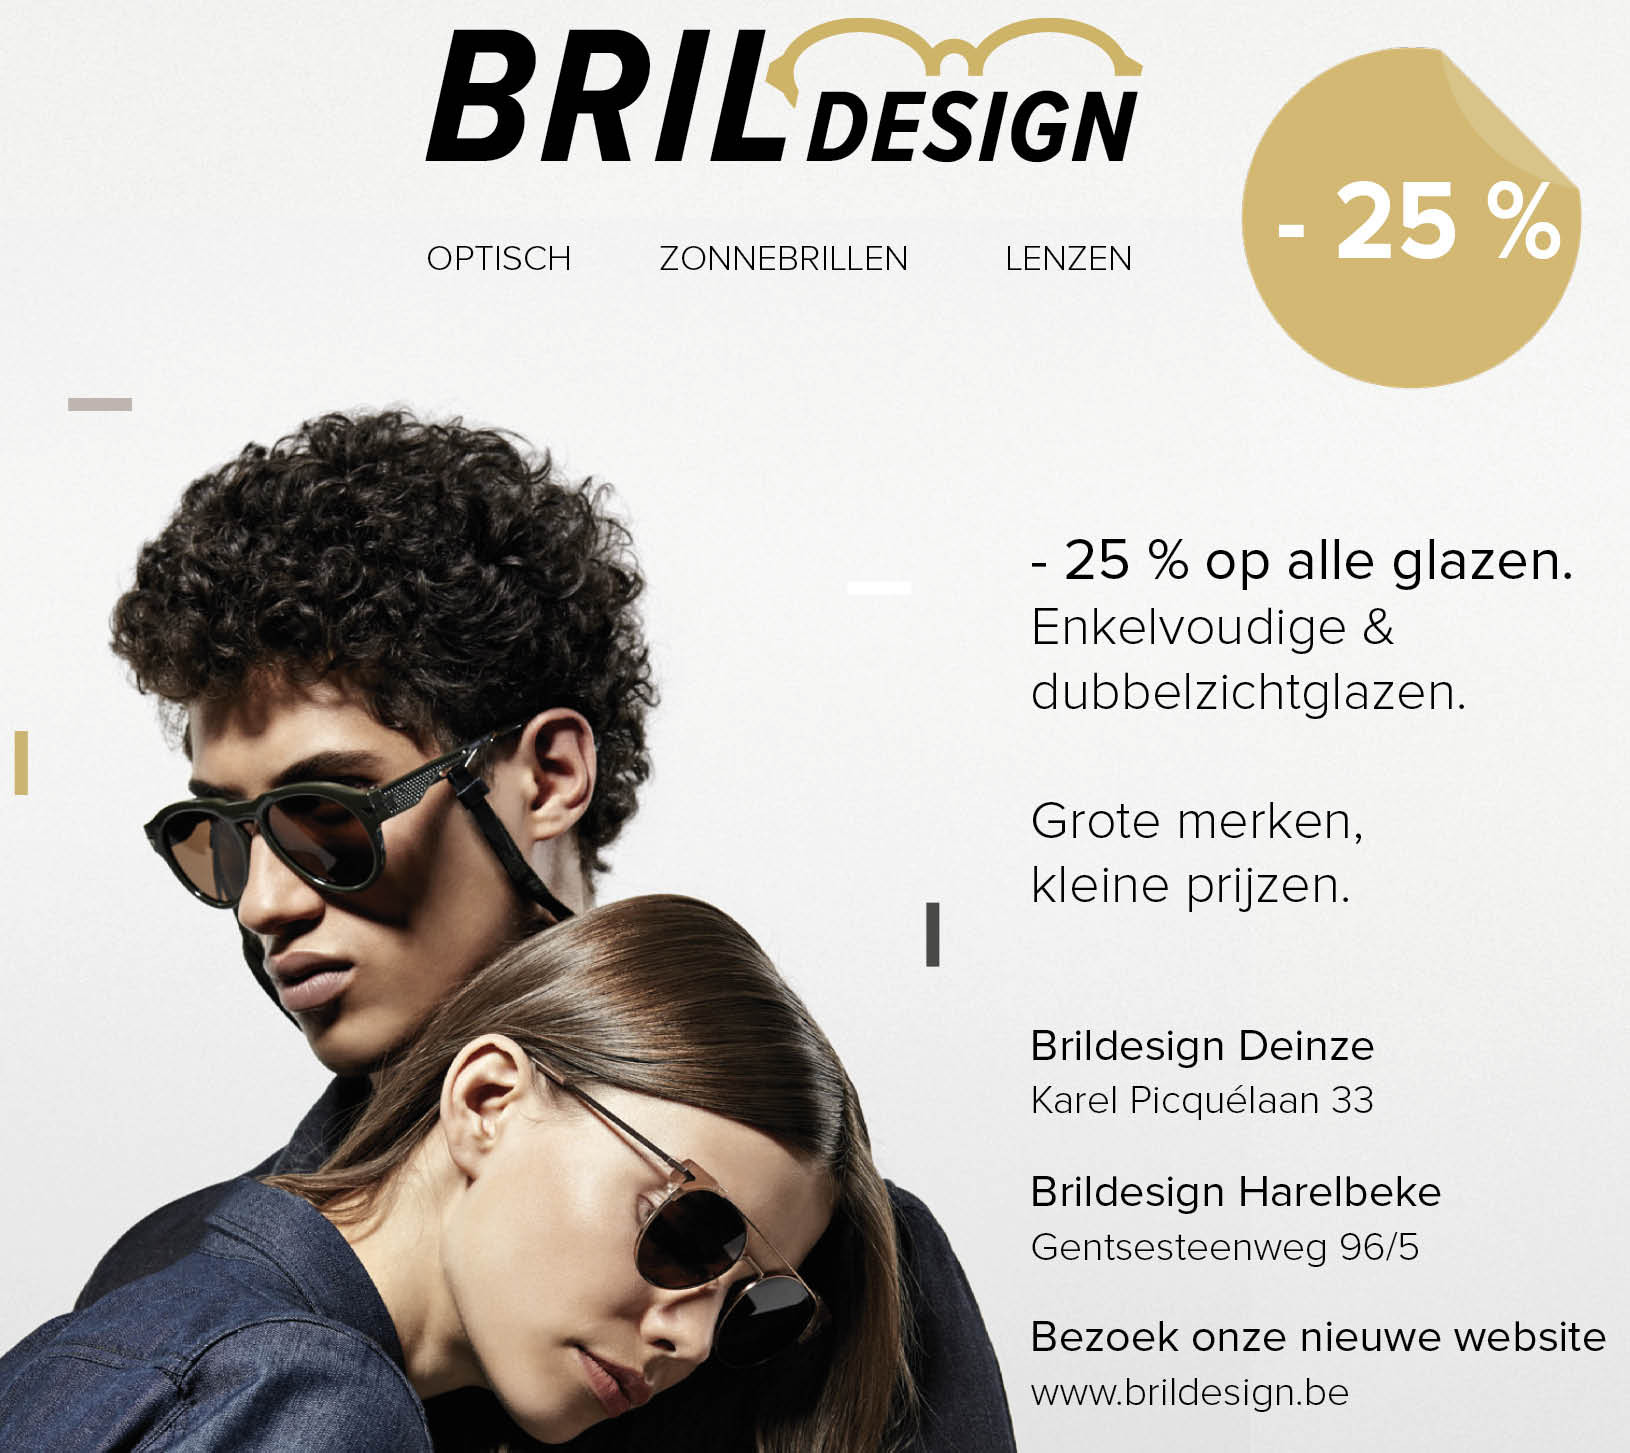 brildesign_deinze_maart_2019.jpg